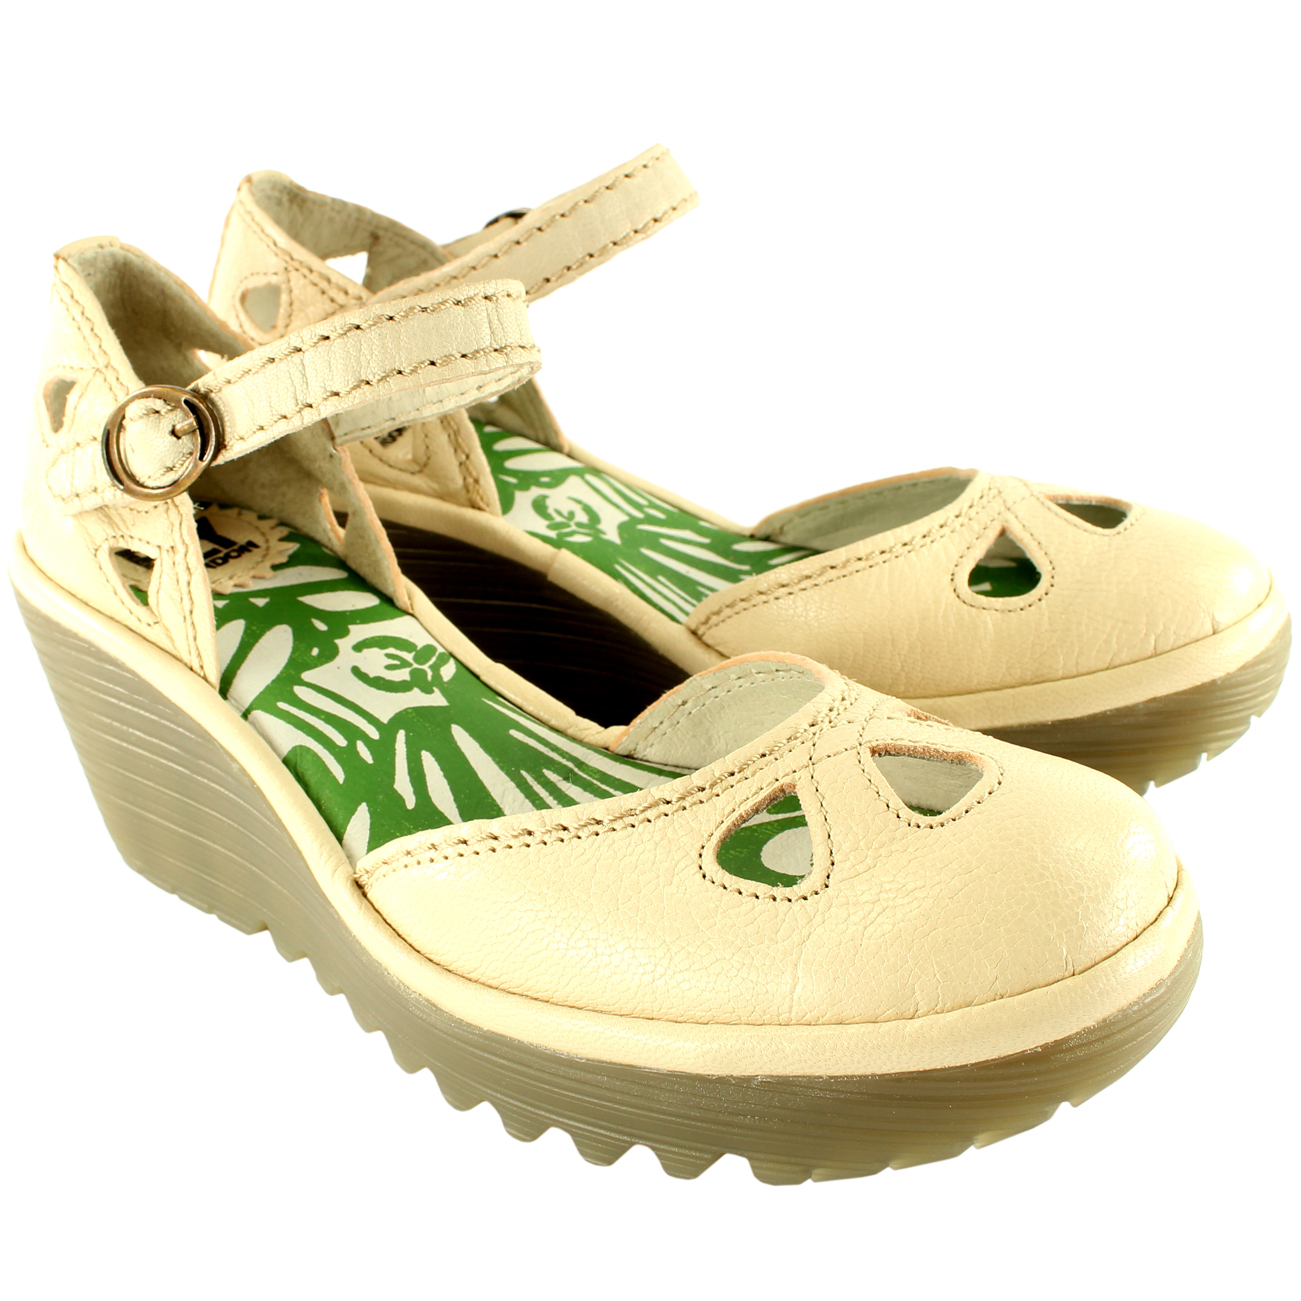 Fly London Yuna Wedge Heel Sandals